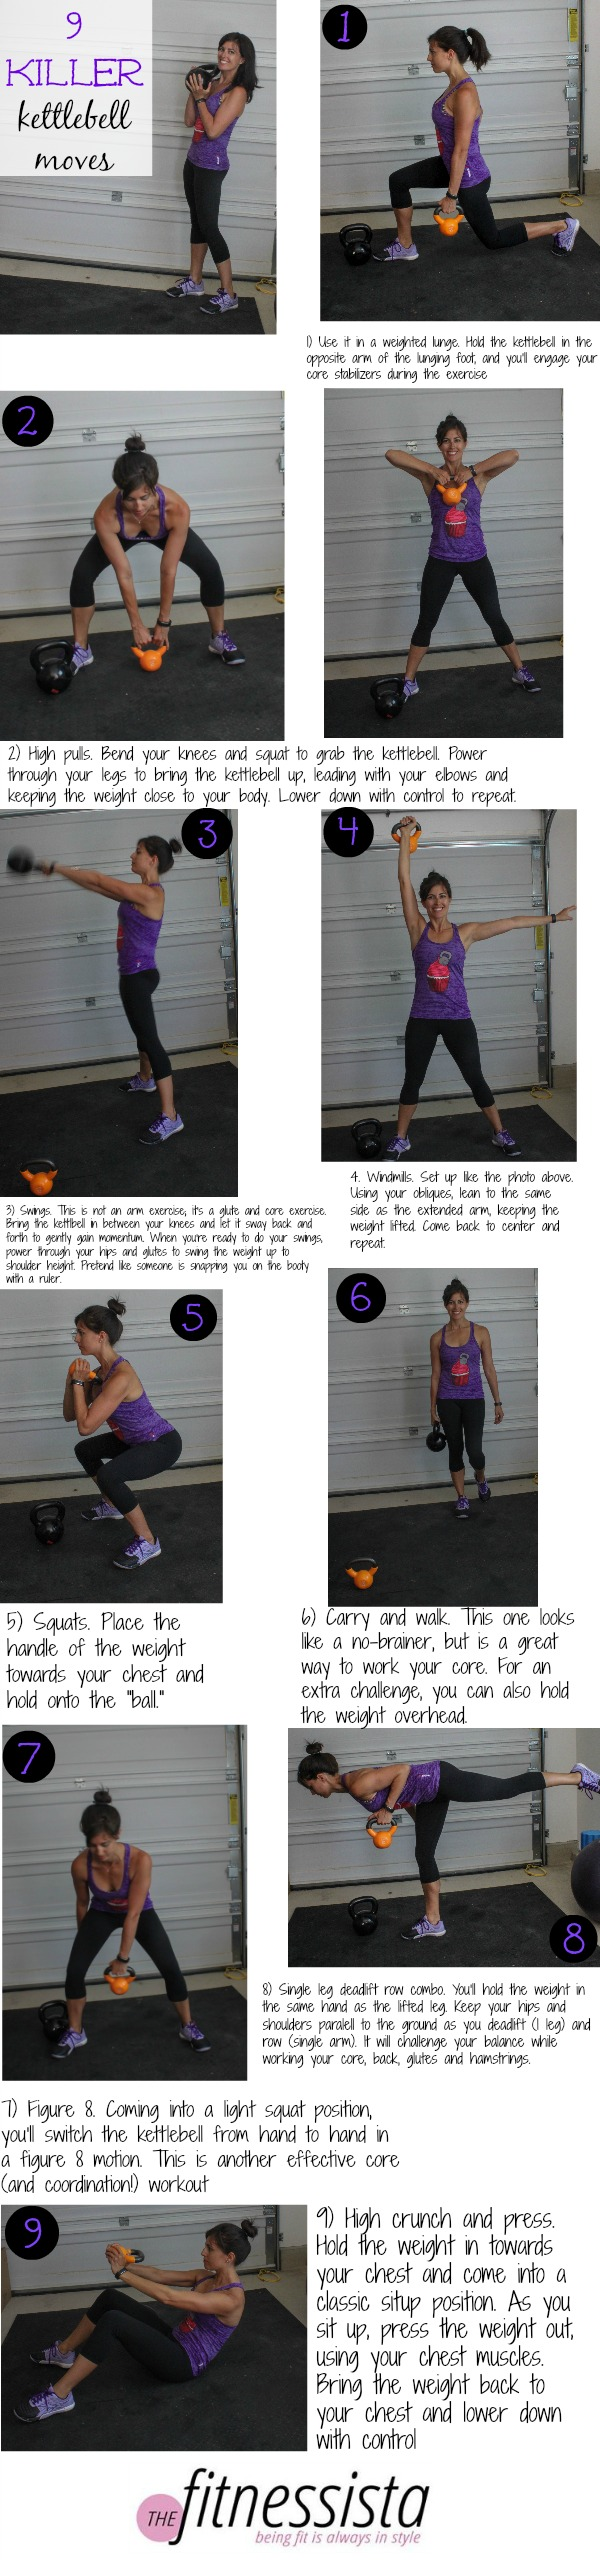 9 killer kettlebell moves